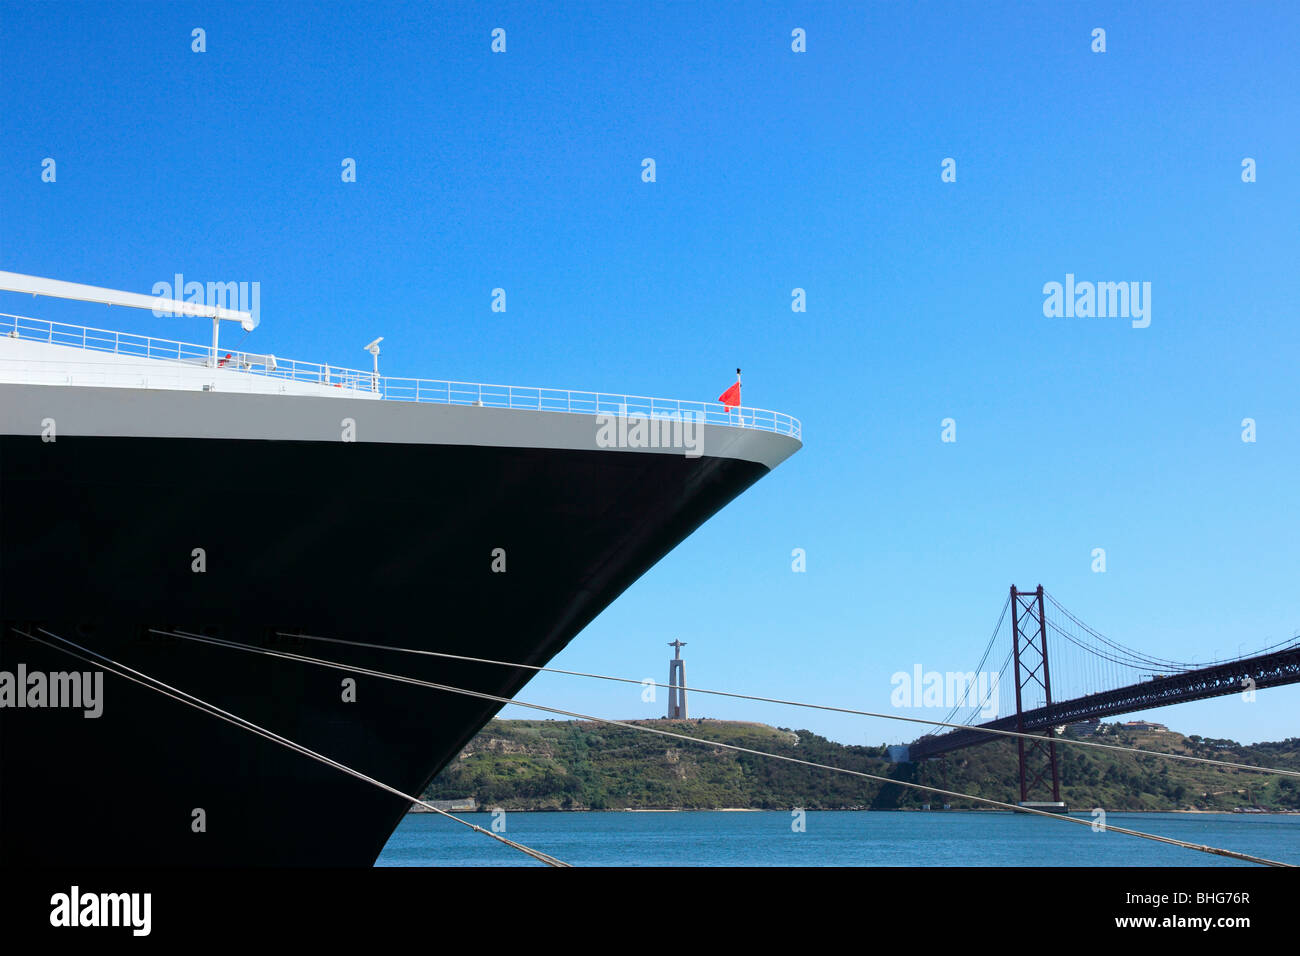 Cruise ship and 25th april bridge - Stock Image